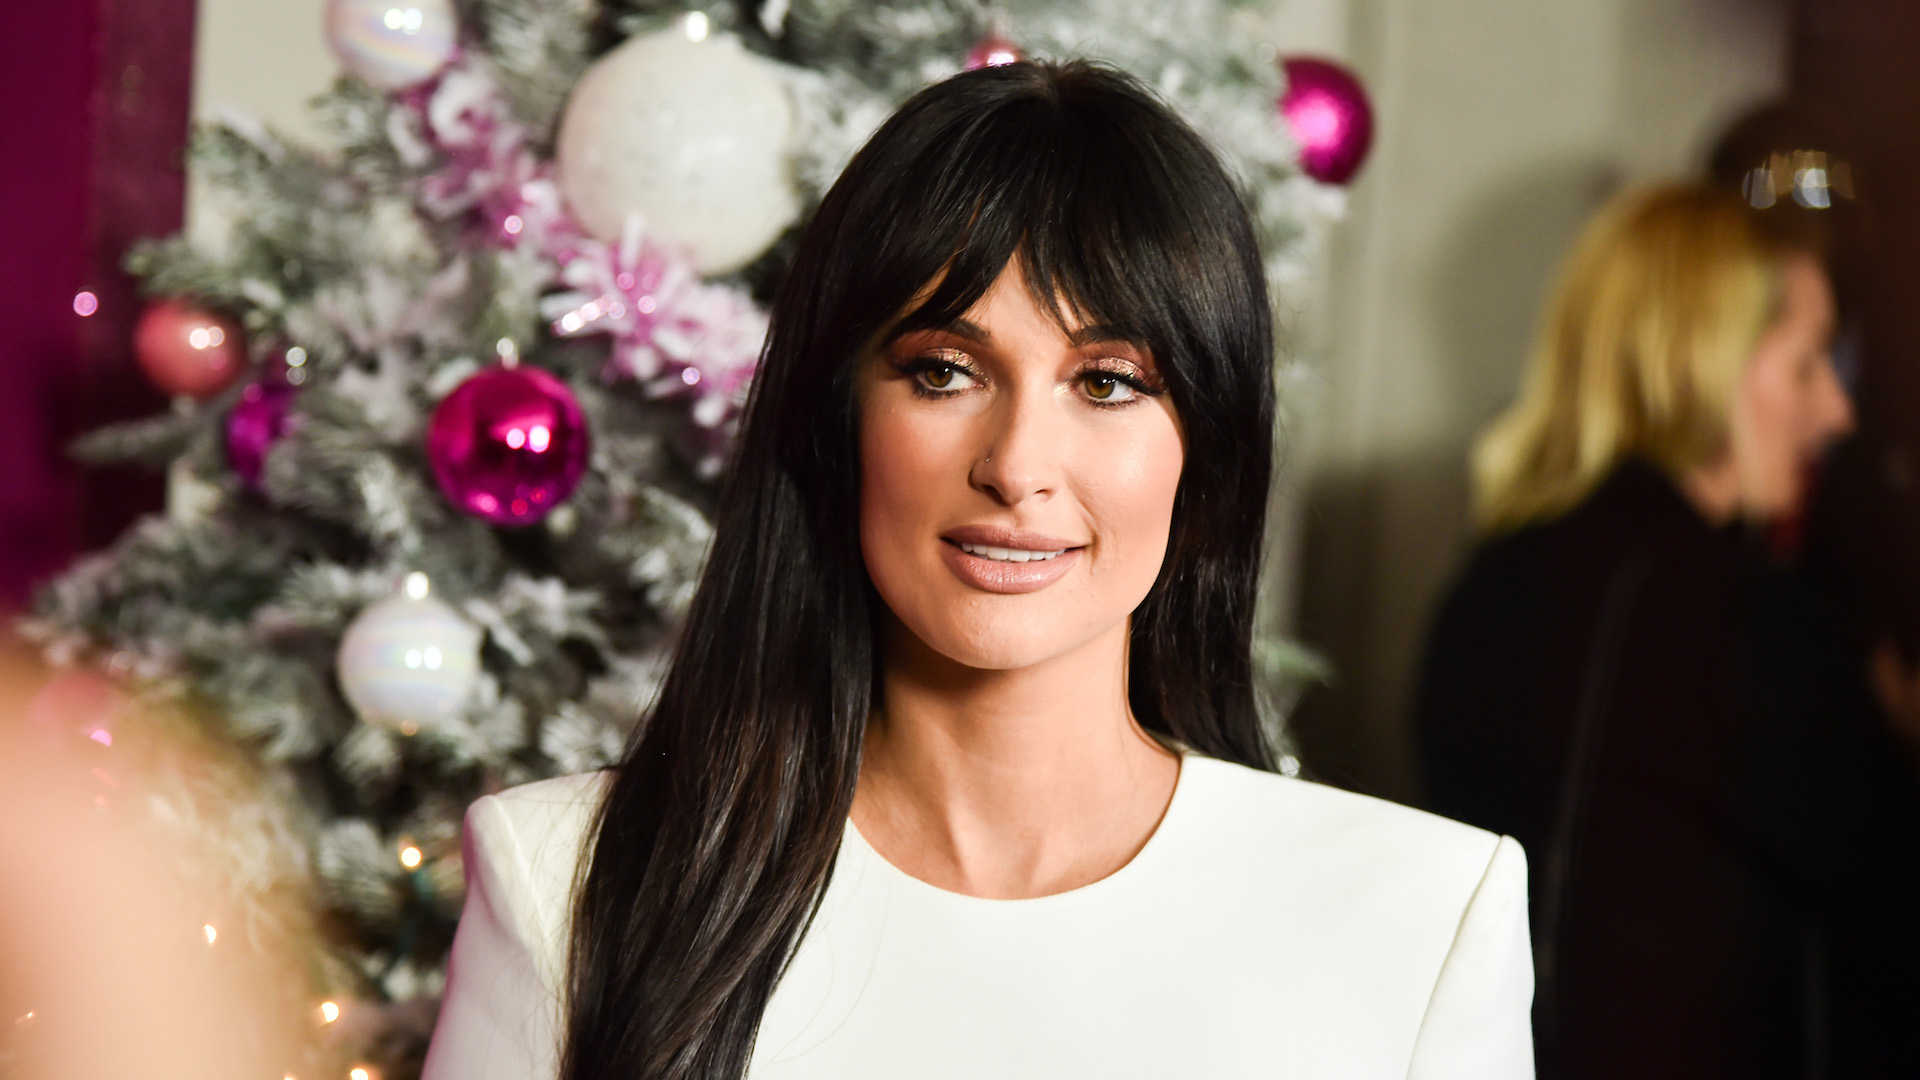 Kacey Musgraves' All-White Crop Top & Miniskirt Look Is Somehow Perfect for the Holidays